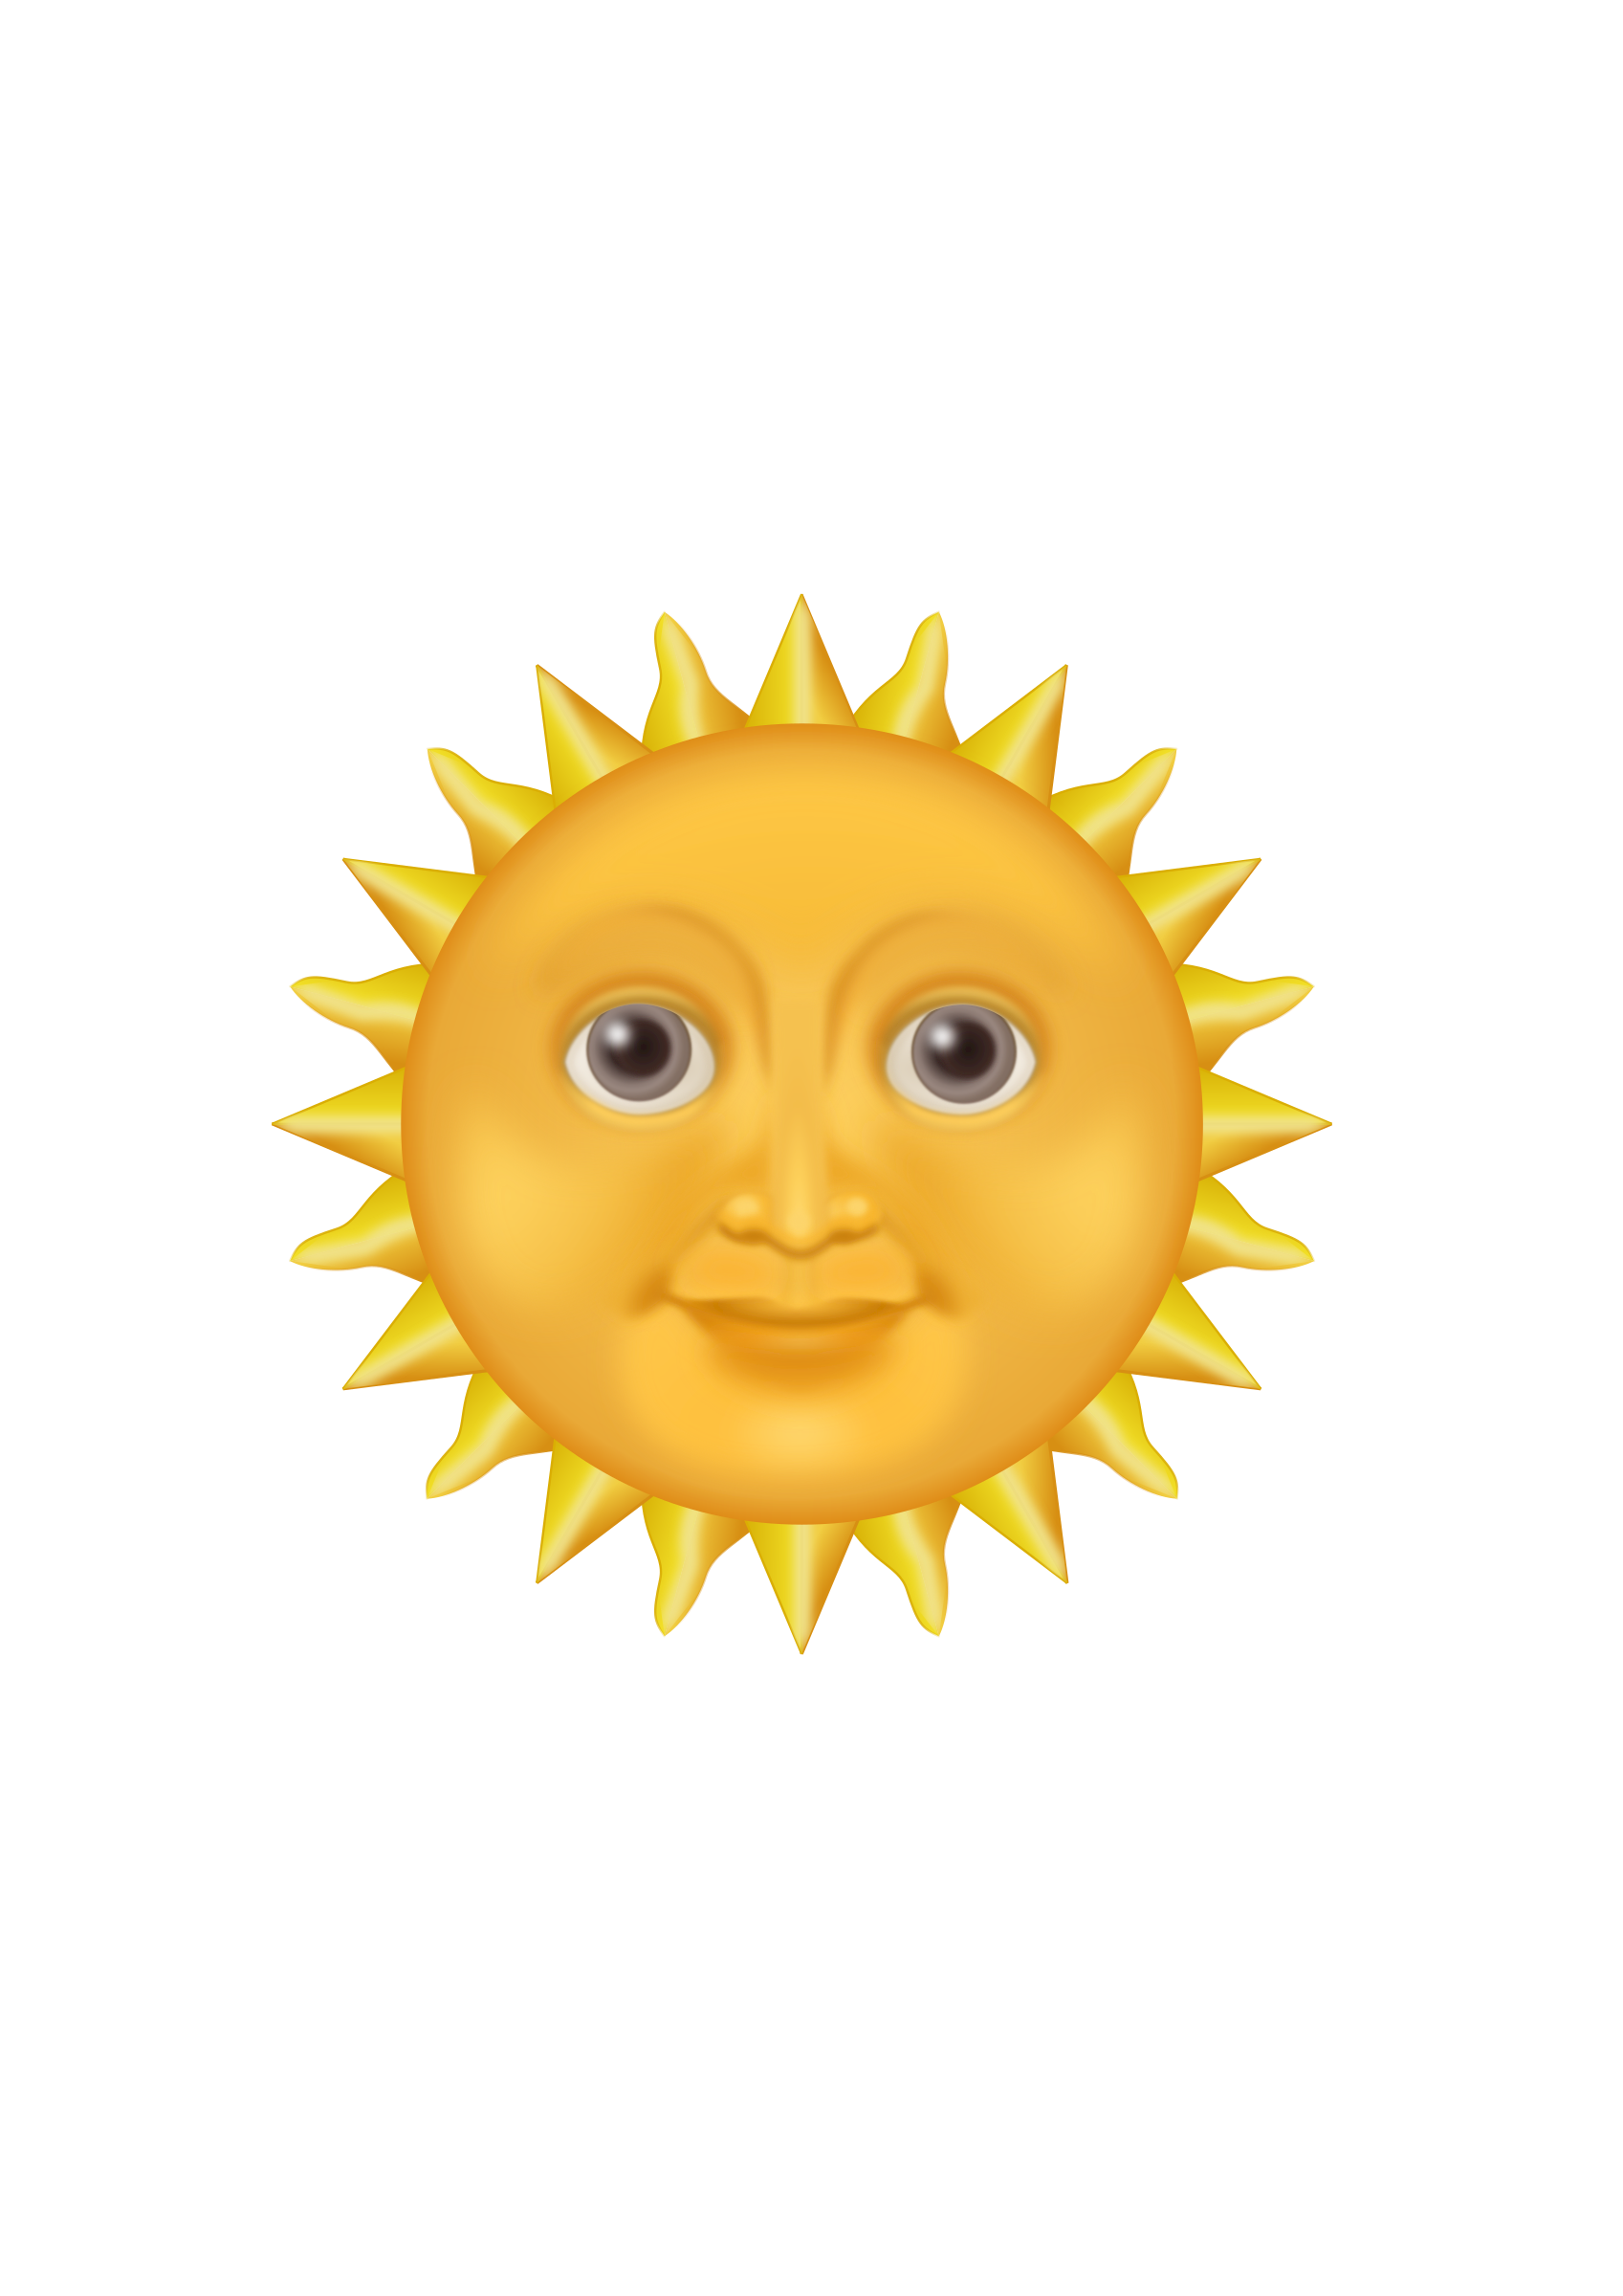 Sun emoji clipart picture royalty free library Sun Emote by @PomPrint, My version of the sun emoji., on ... picture royalty free library